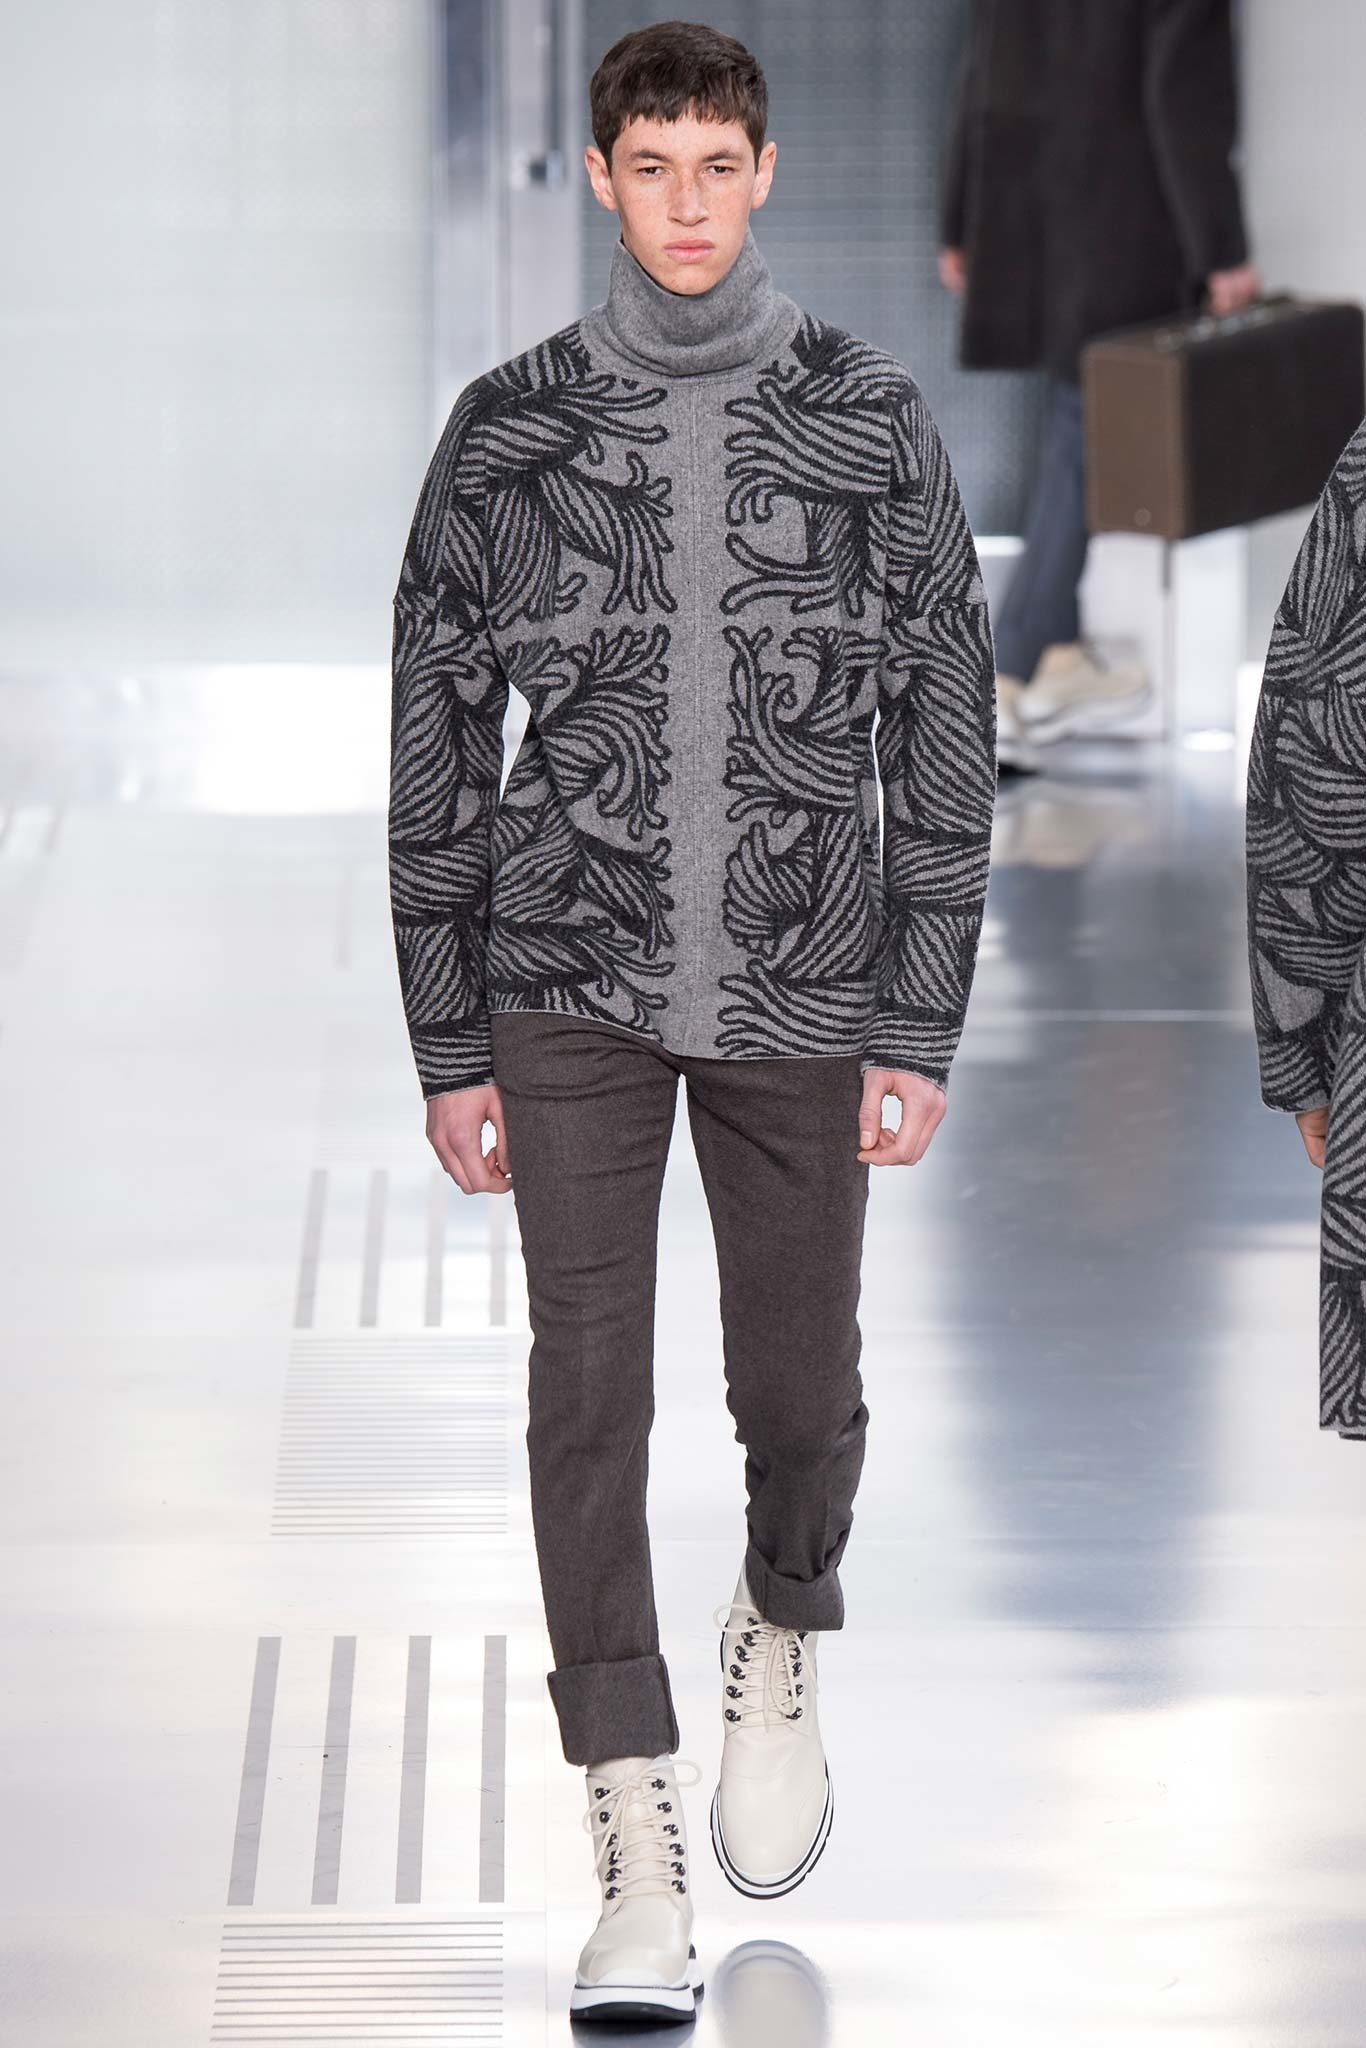 AW14 (archive prints by Jones's late mentor, Christopher Nemeth)